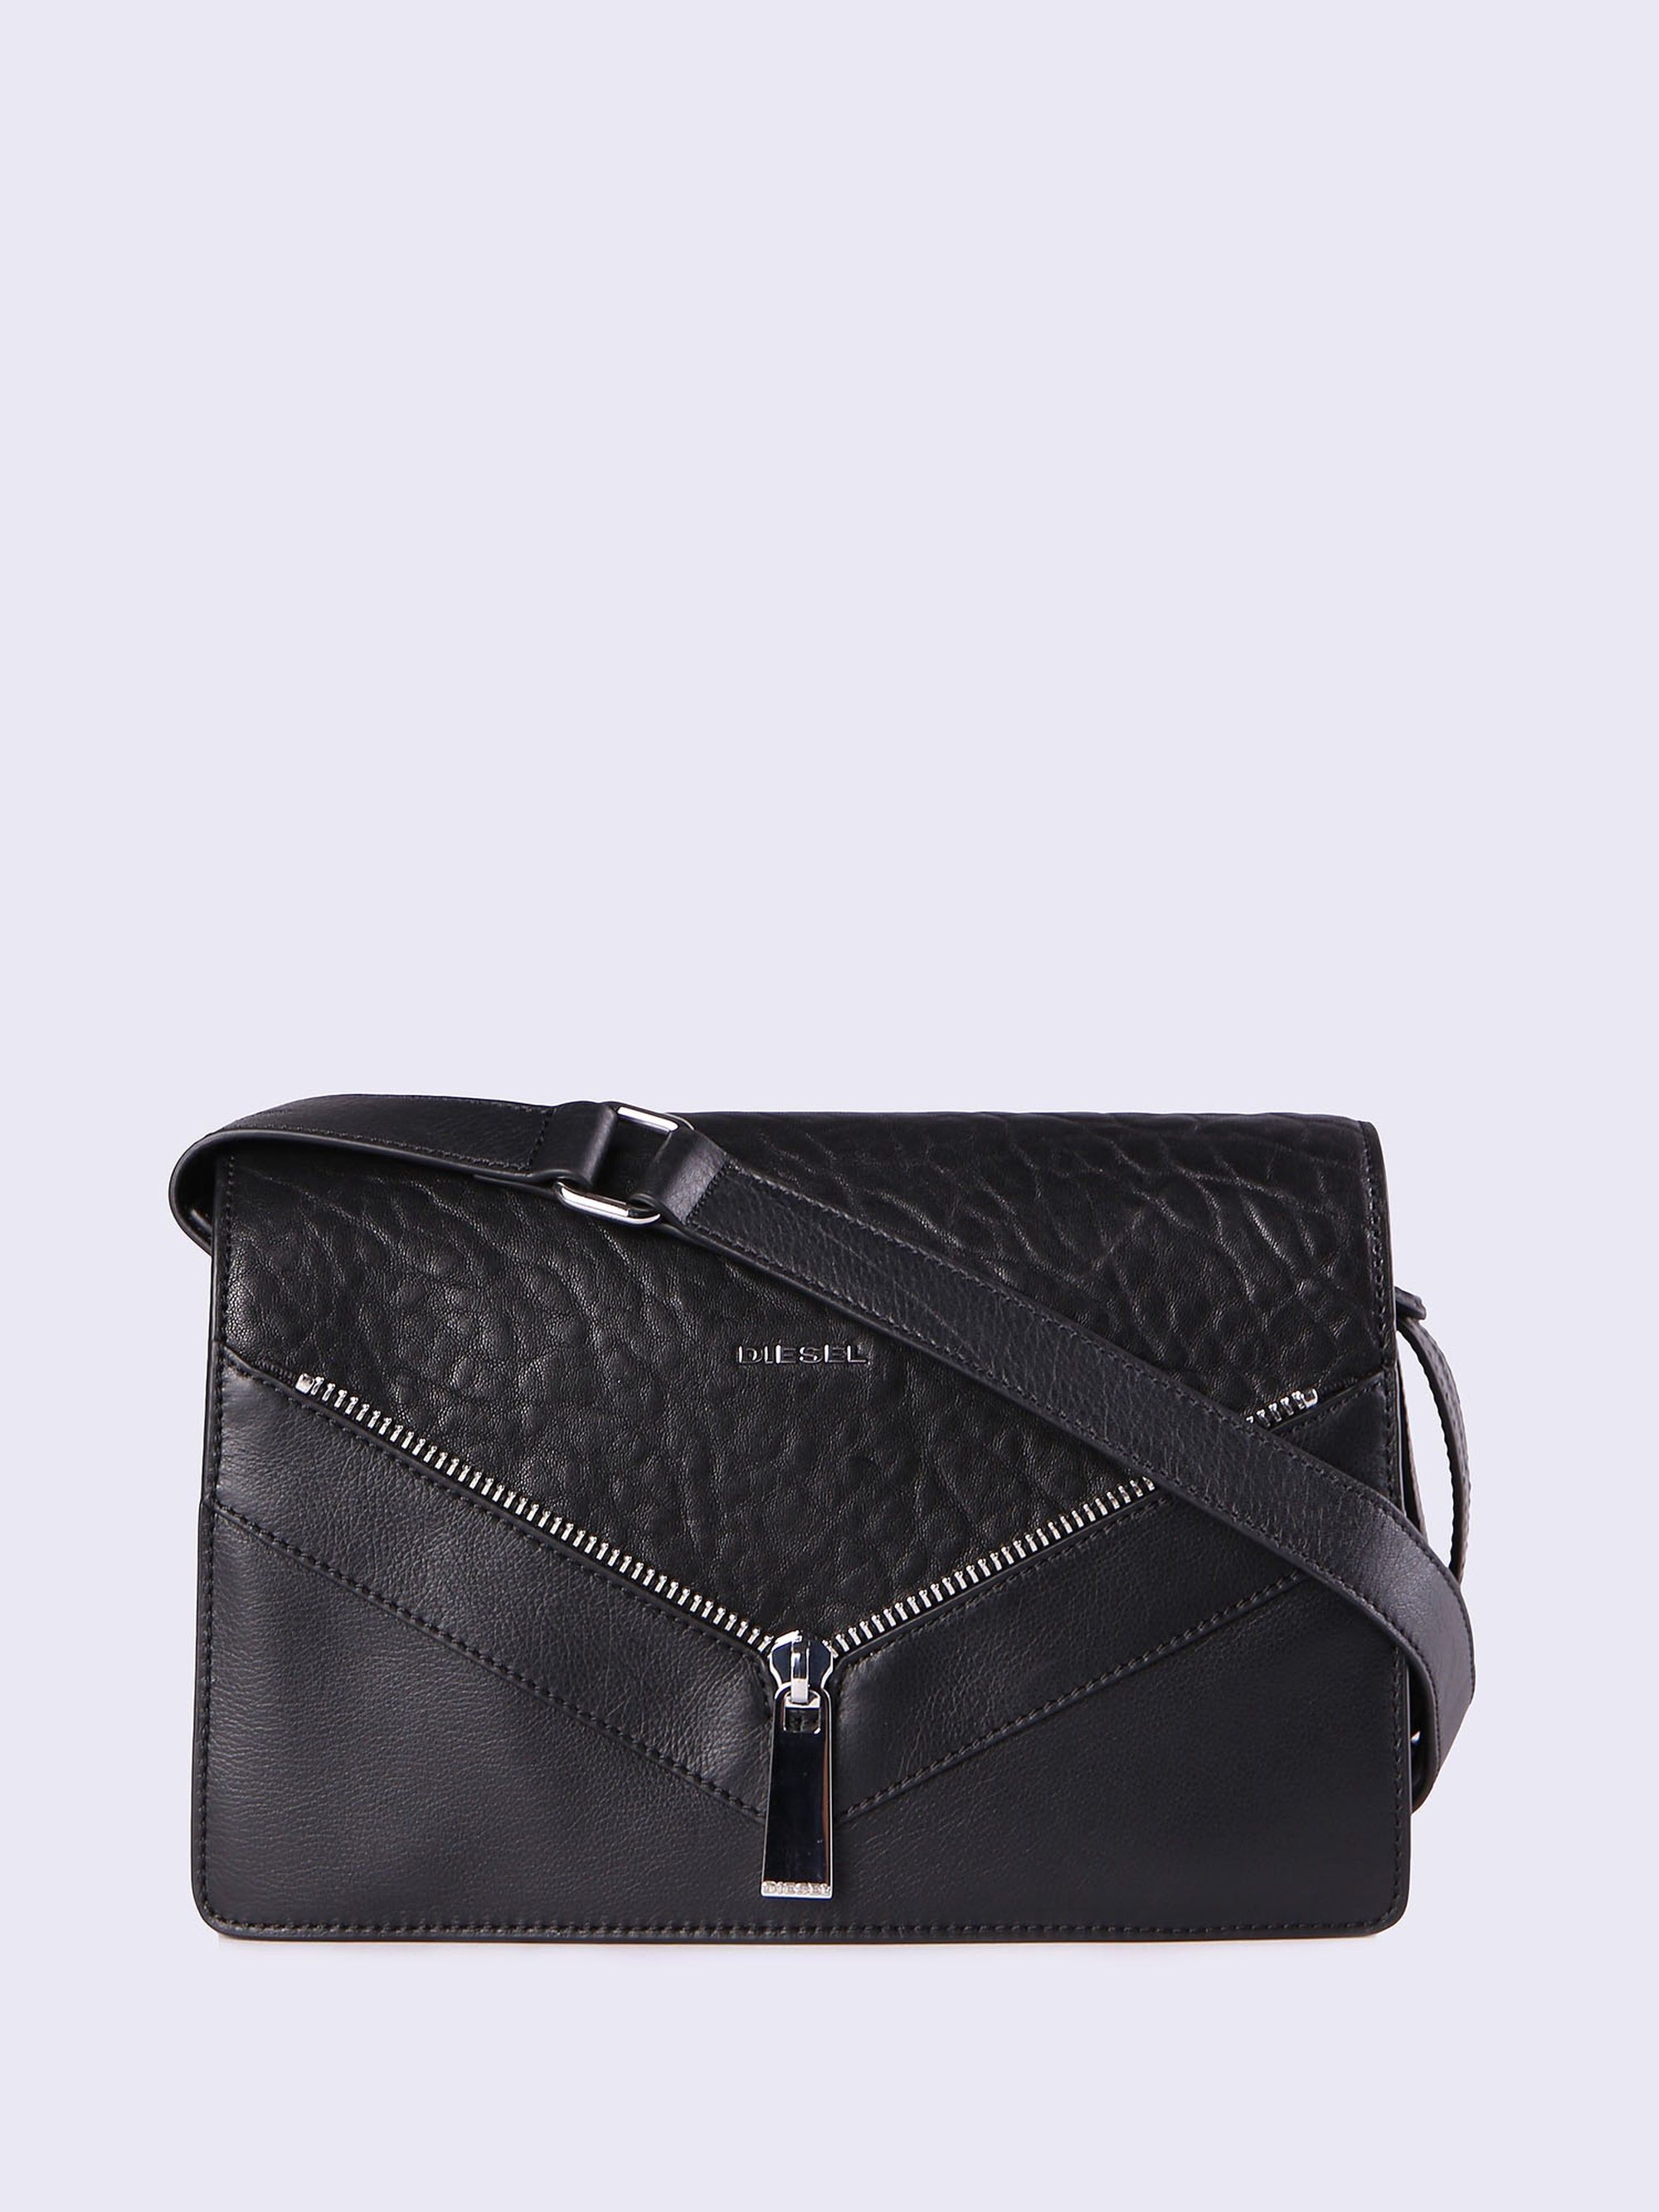 DIESEL Le-Misha Crossbody Bags.  diesel  bags  shoulder bags  leather   crossbody   654eb480b90fb